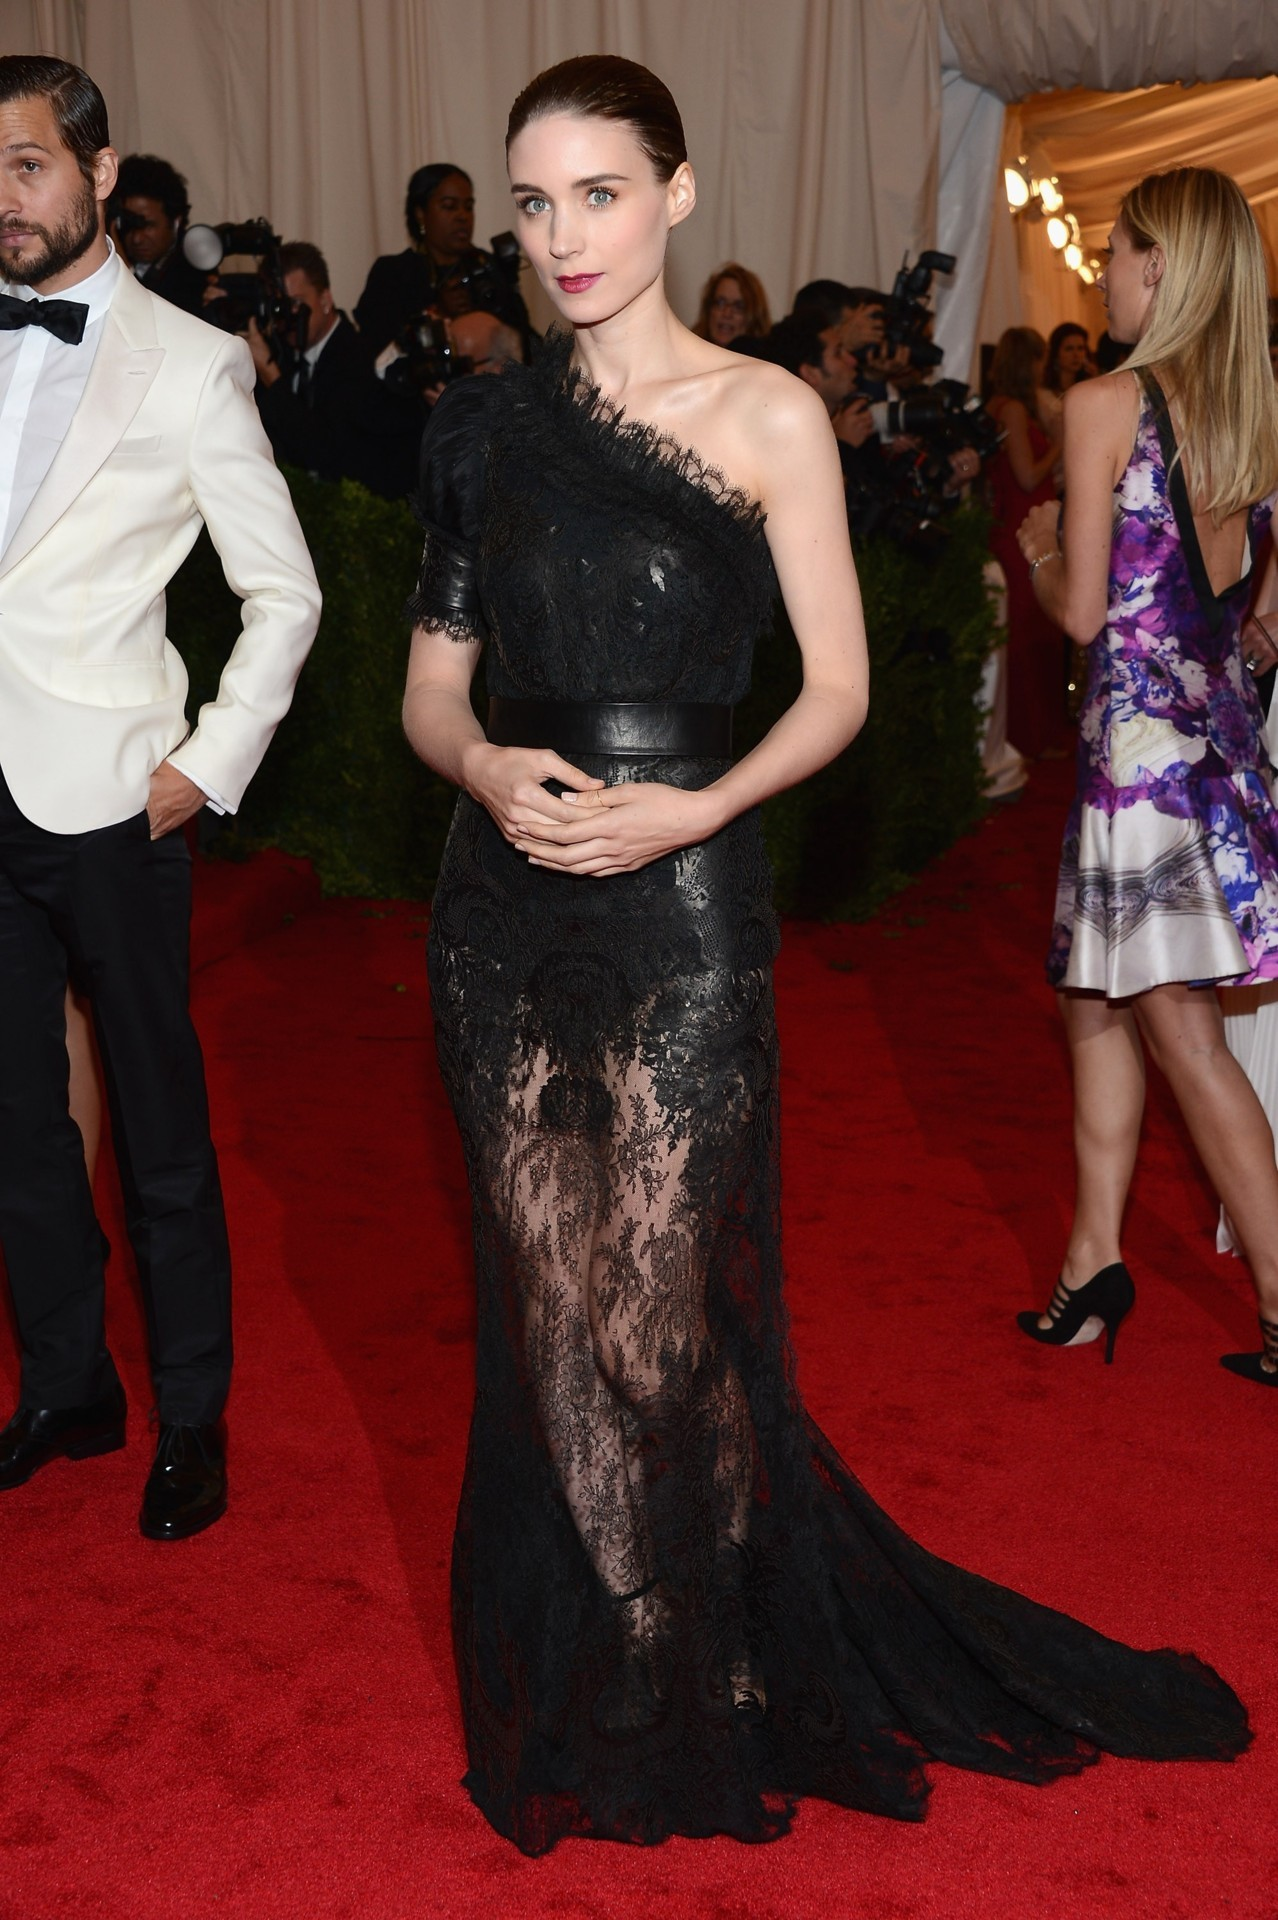 Rooney Mara in Givenchy at the 2012 Met Costume Gala, May 7th You can always trust Rooney to make the daring choice and look fantastic while doing it.  And she was made to wear Givenchy.